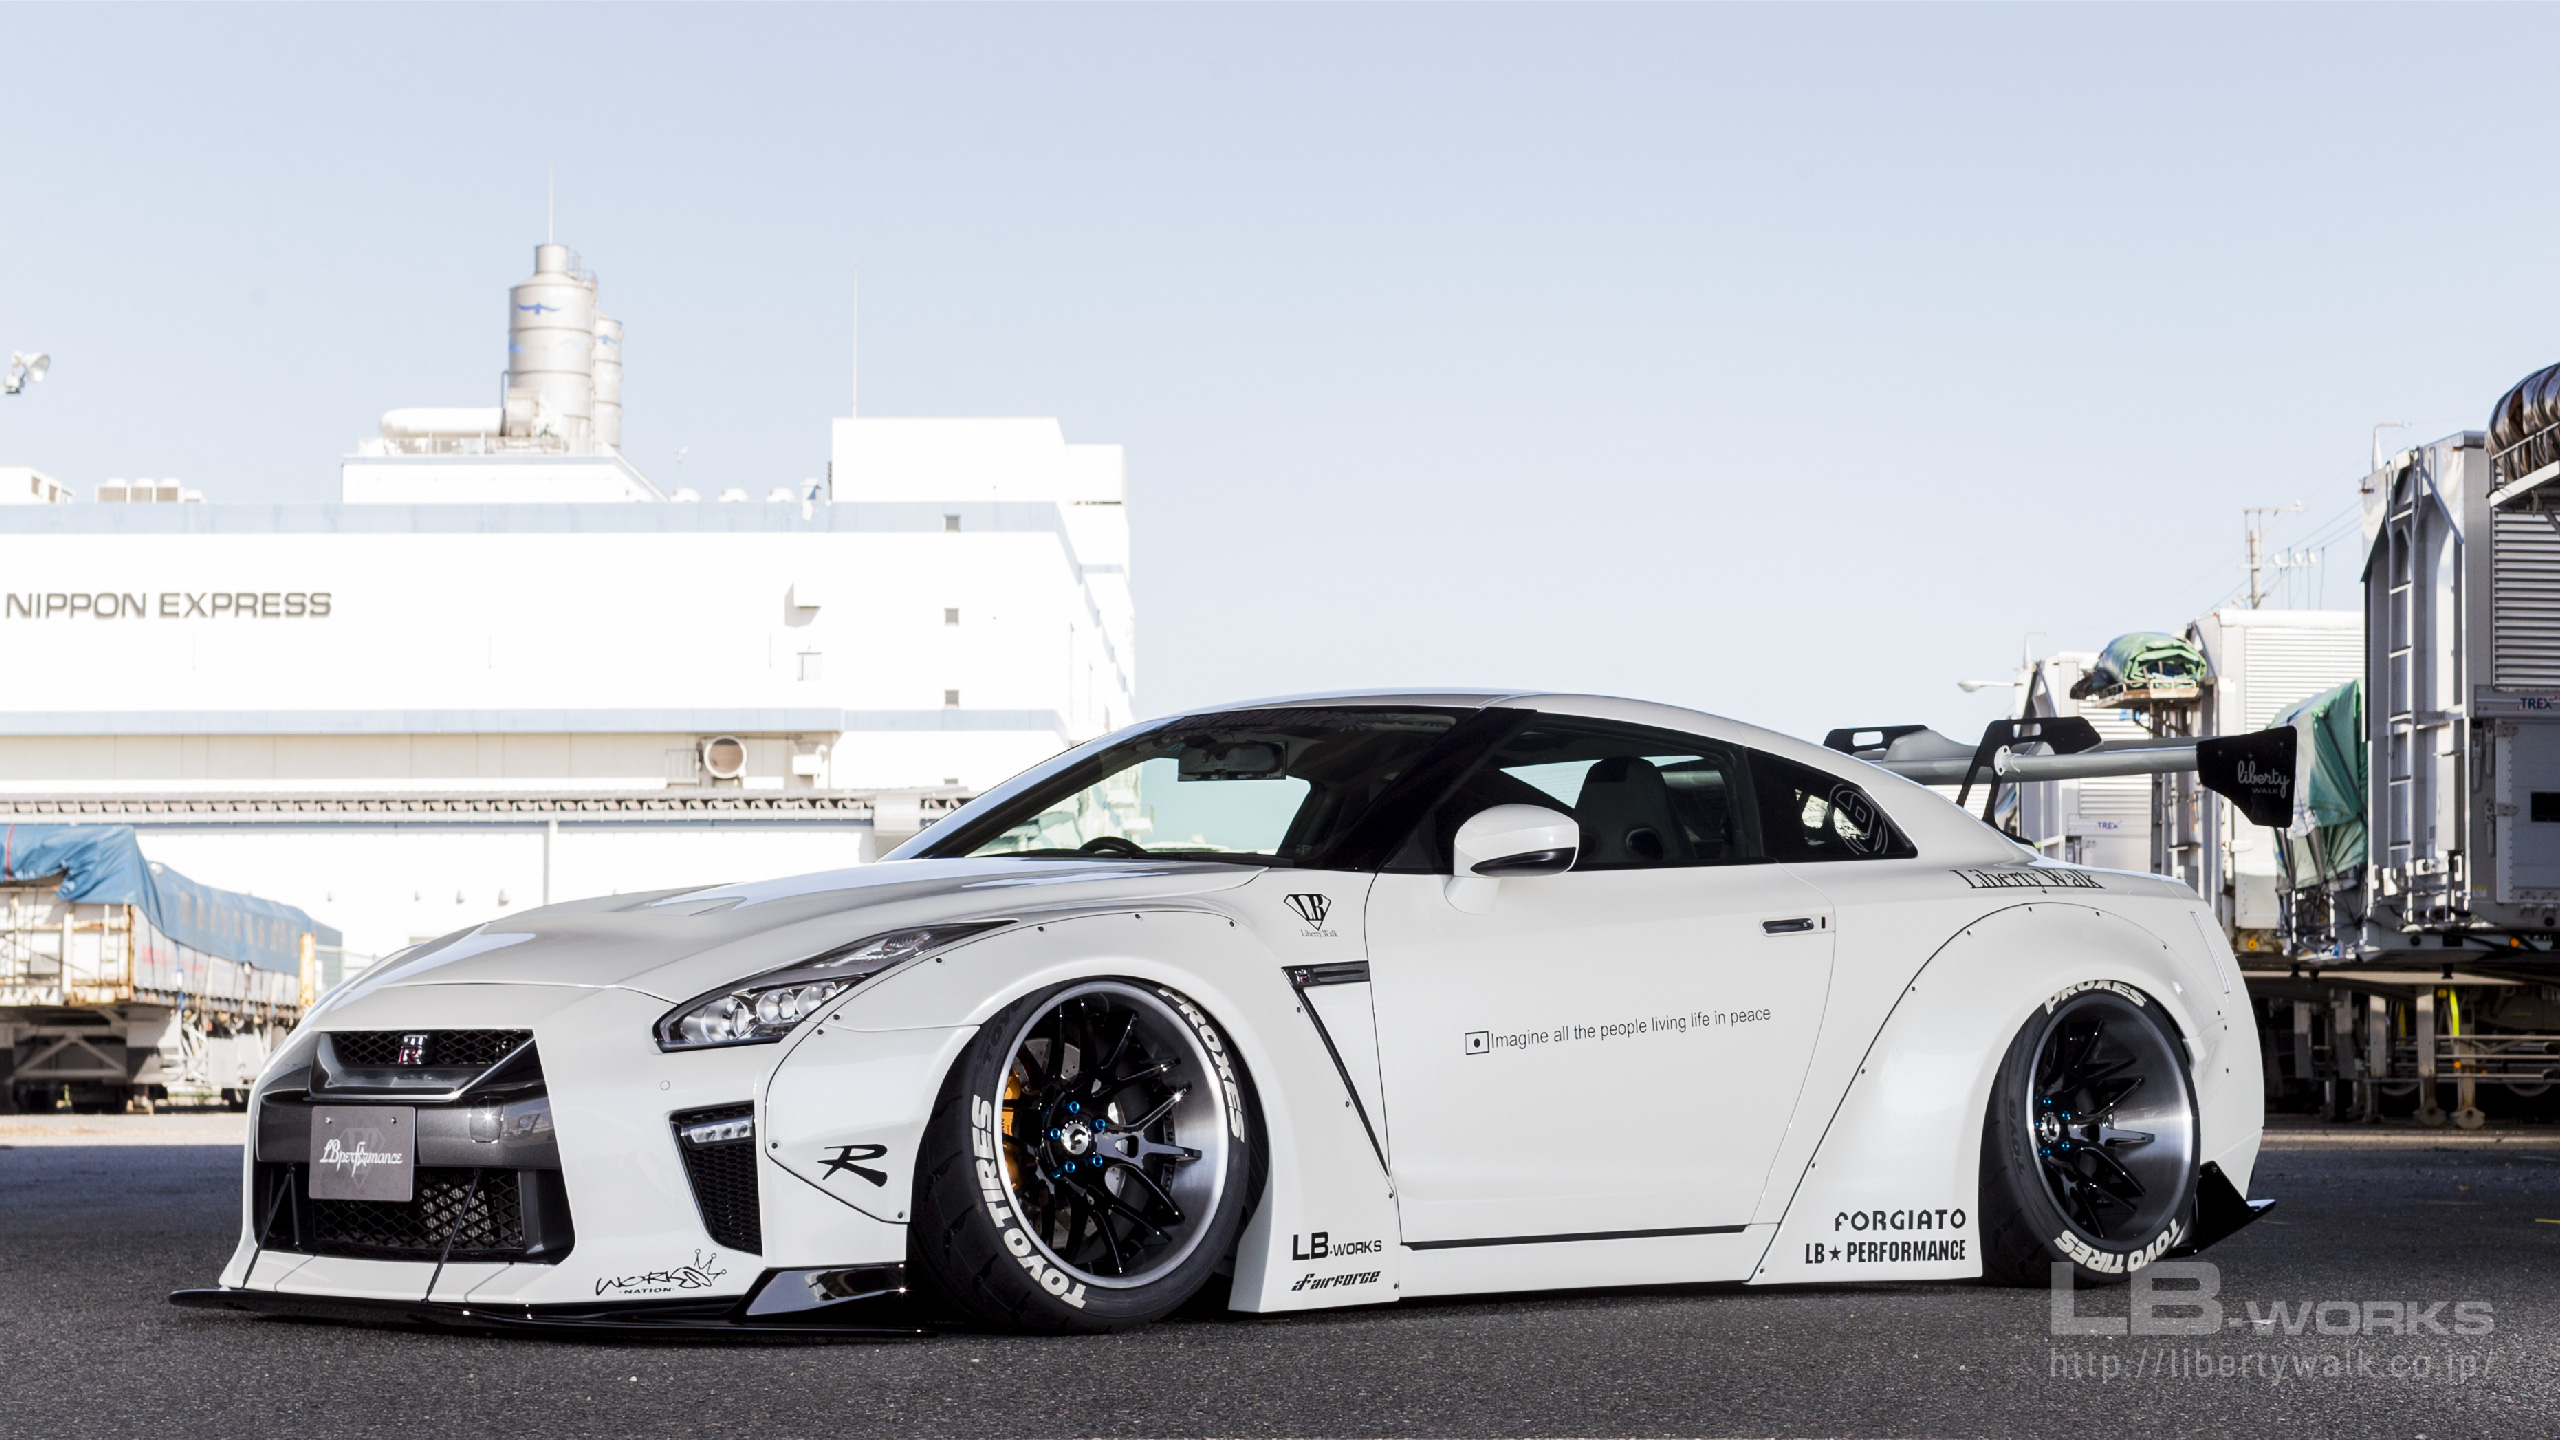 112-80 LB-WORKS NISSAN GT-R R35 type 1.5